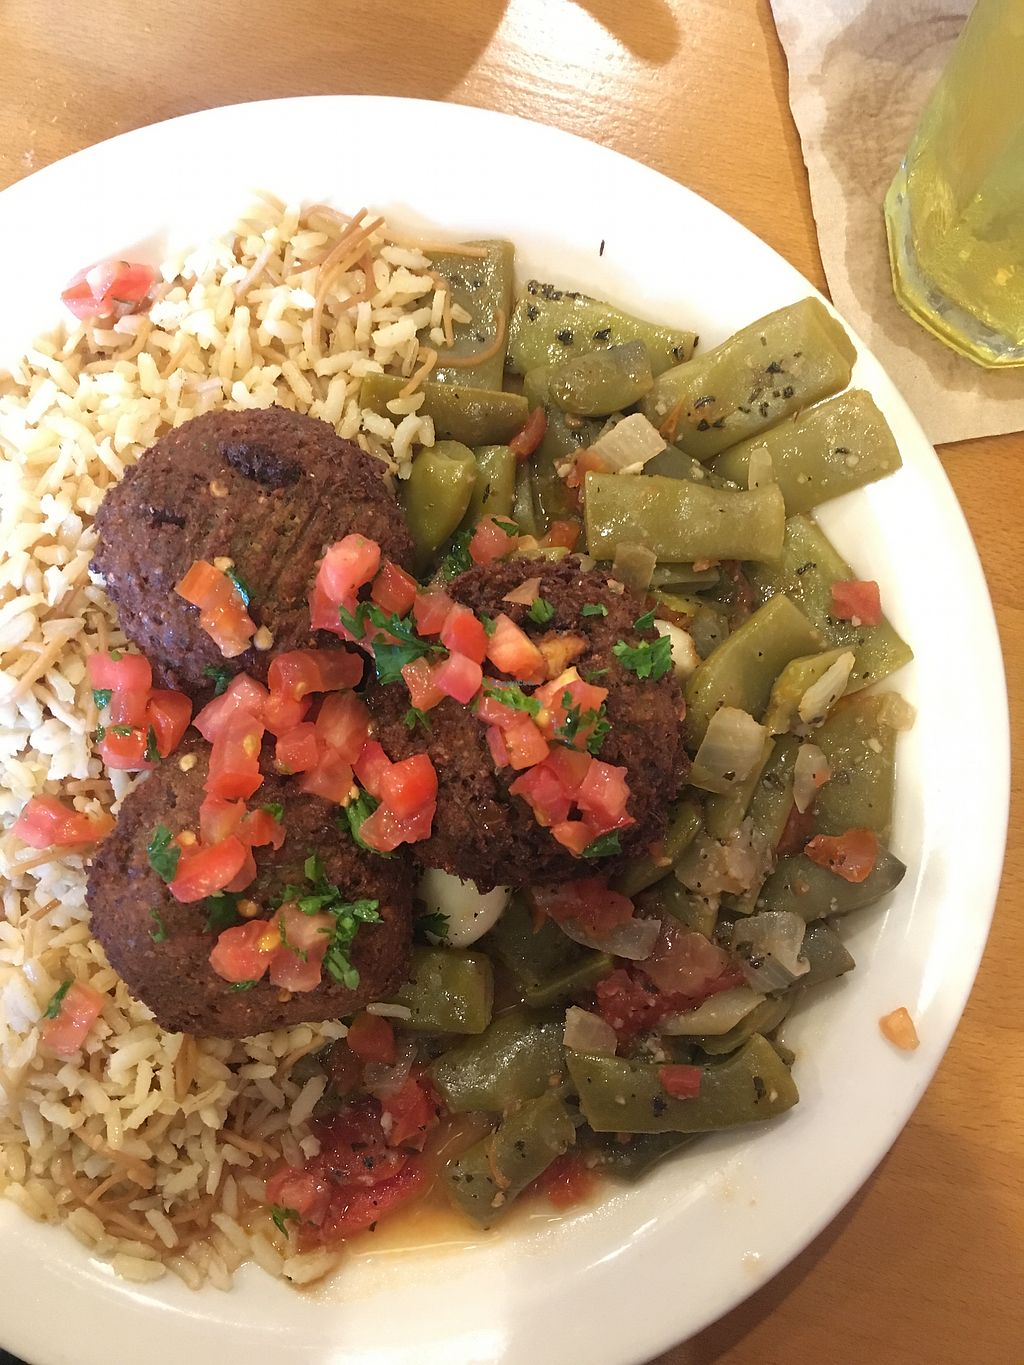 "Photo of Aladdin's Eatery  by <a href=""/members/profile/Jaclynch_eats"">Jaclynch_eats</a> <br/>Loubie plate with falafel <br/> March 15, 2018  - <a href='/contact/abuse/image/35832/371051'>Report</a>"